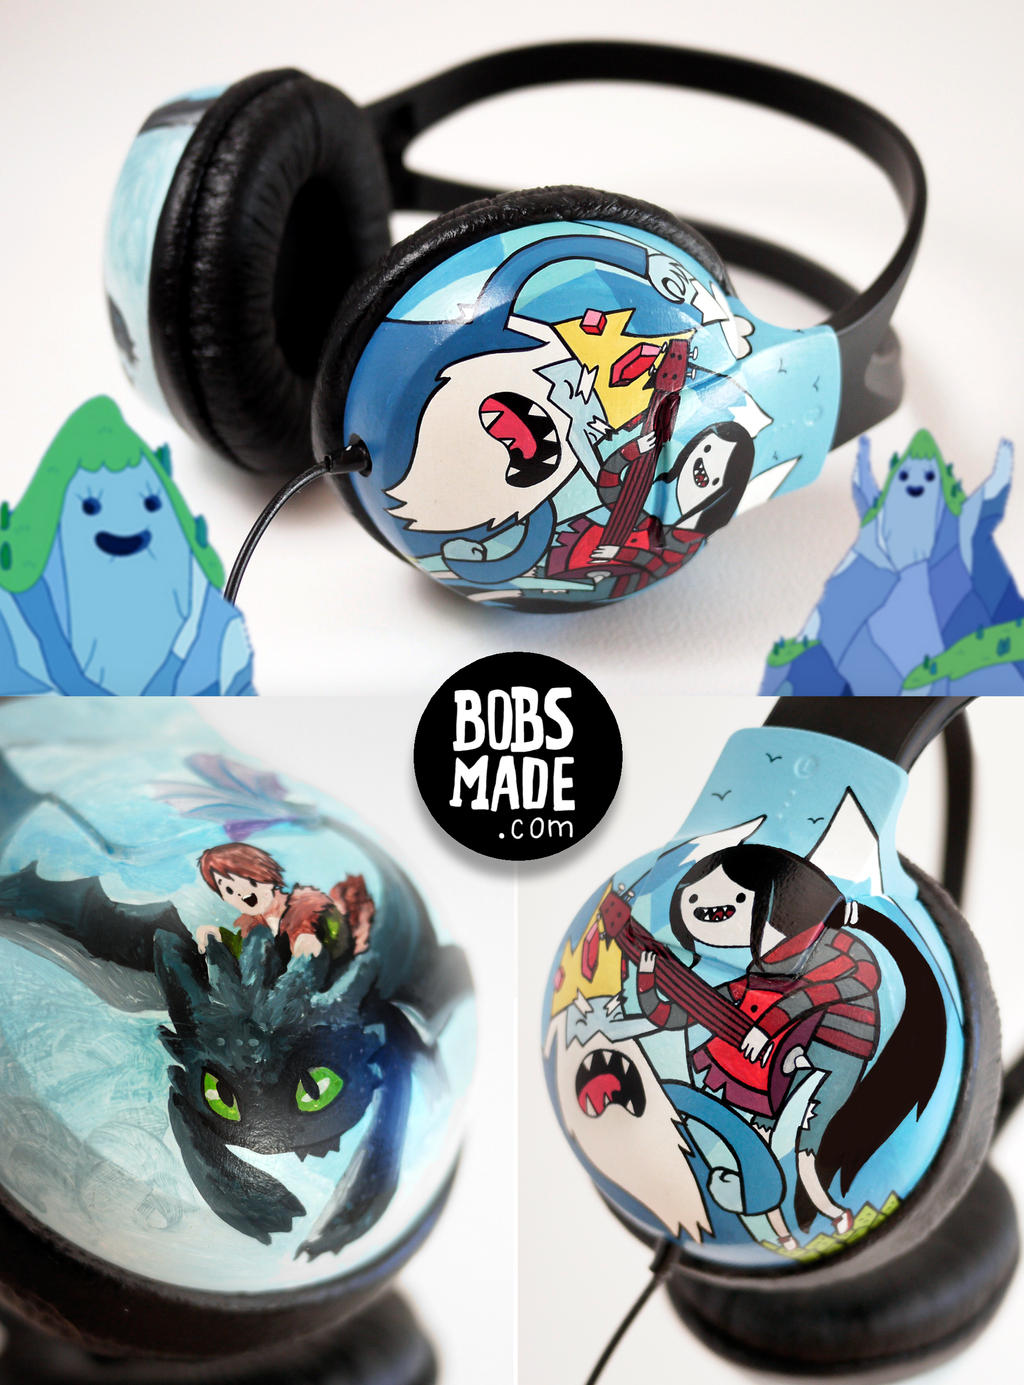 Adventure Dragon Headphones by Bobsmade